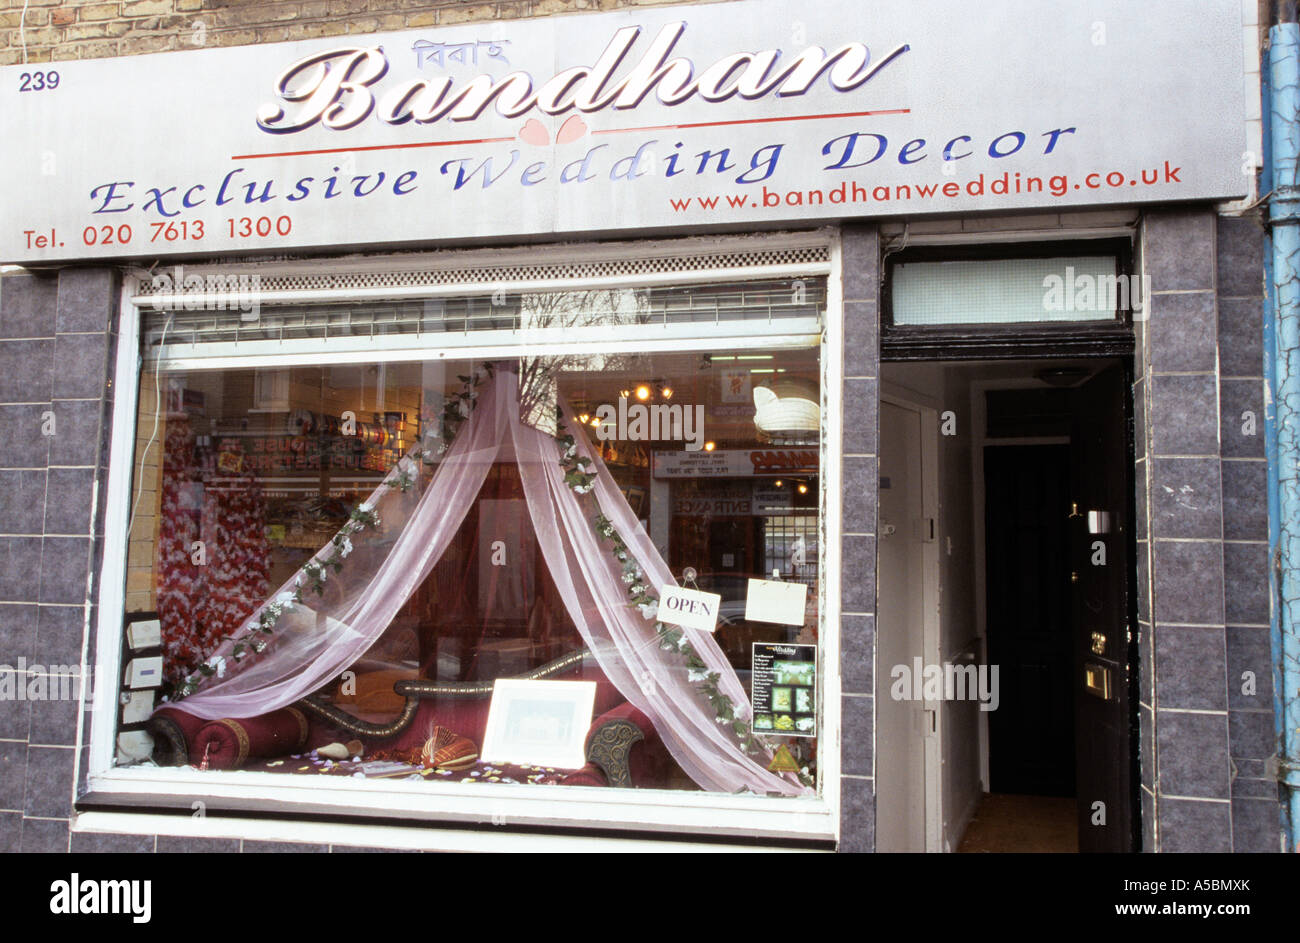 A window of a shop selling exclusive wedding decor in for Wedding decoration shop